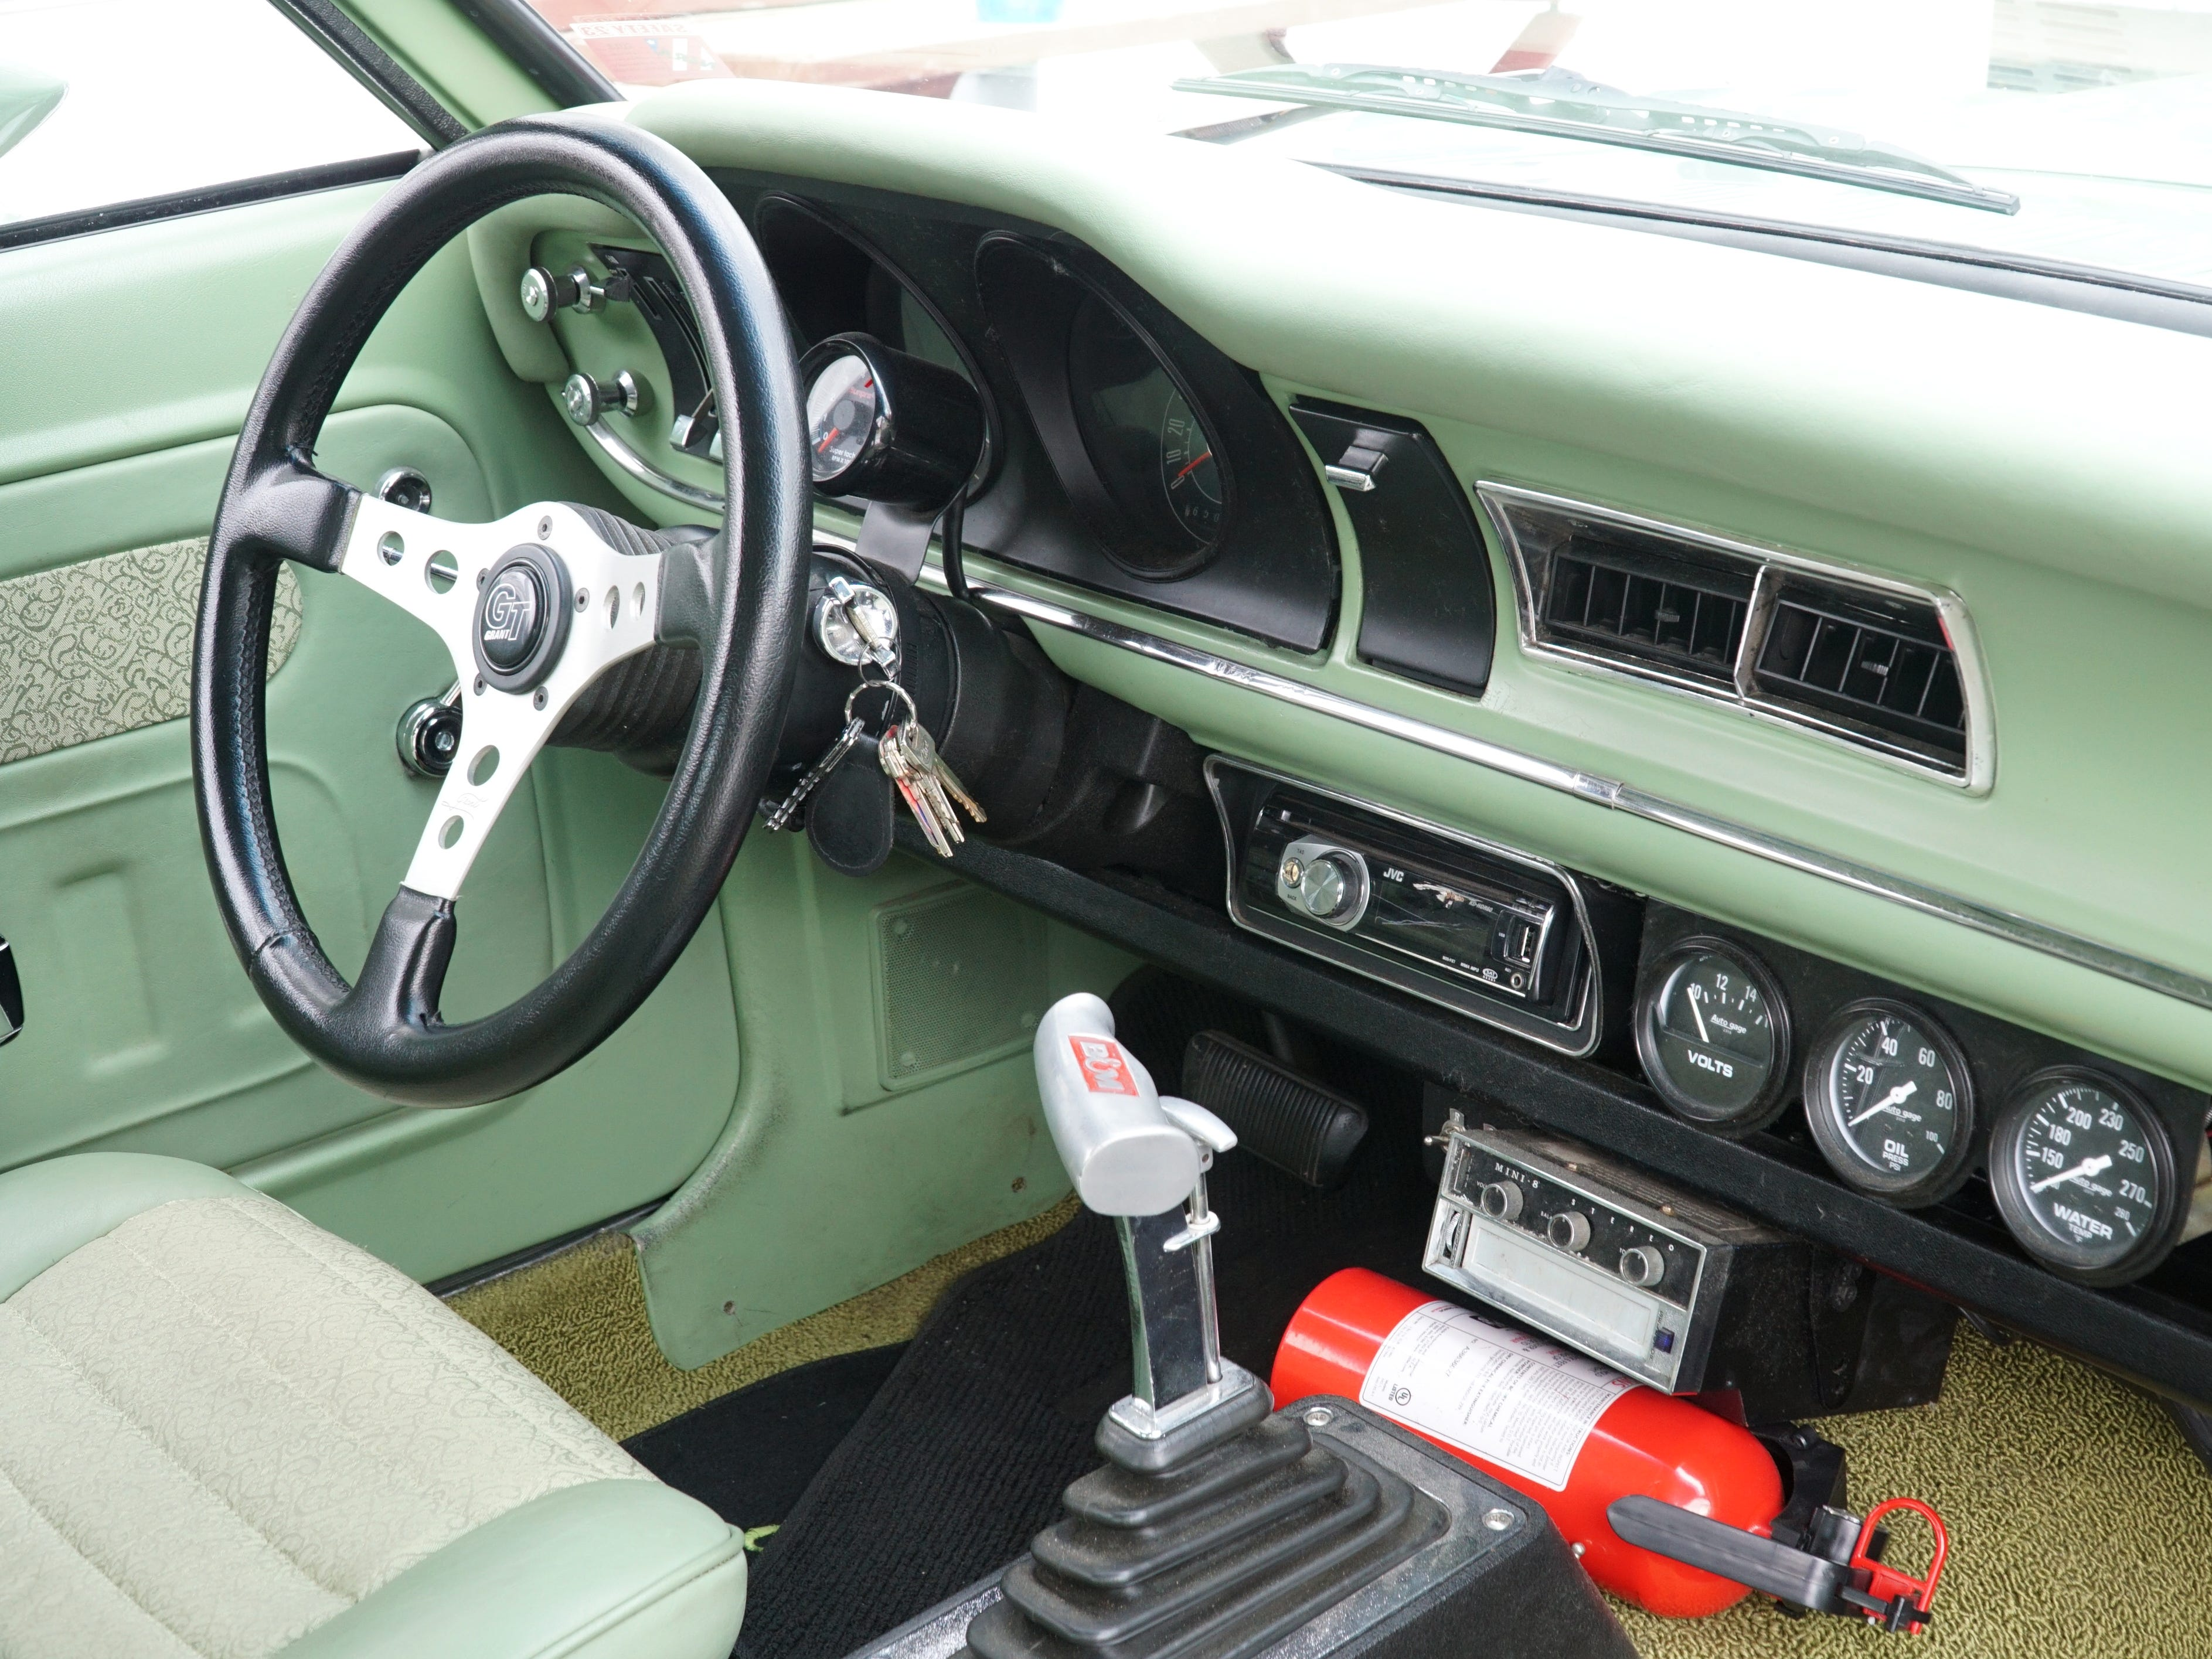 The interior of Livonia resident Mick Stolarczyk's '71 Mercury Comet. He'll be showing the car that he bought in 2007 at this year's Autorama Show in Detroit which begins on Marchn 1 at Cobo Hall. Stolarczyk owned a Comet in the early 70s before he went into the Air Force - and has spent about four years restoring this current model - which he'll drive to car shows - not trailer.